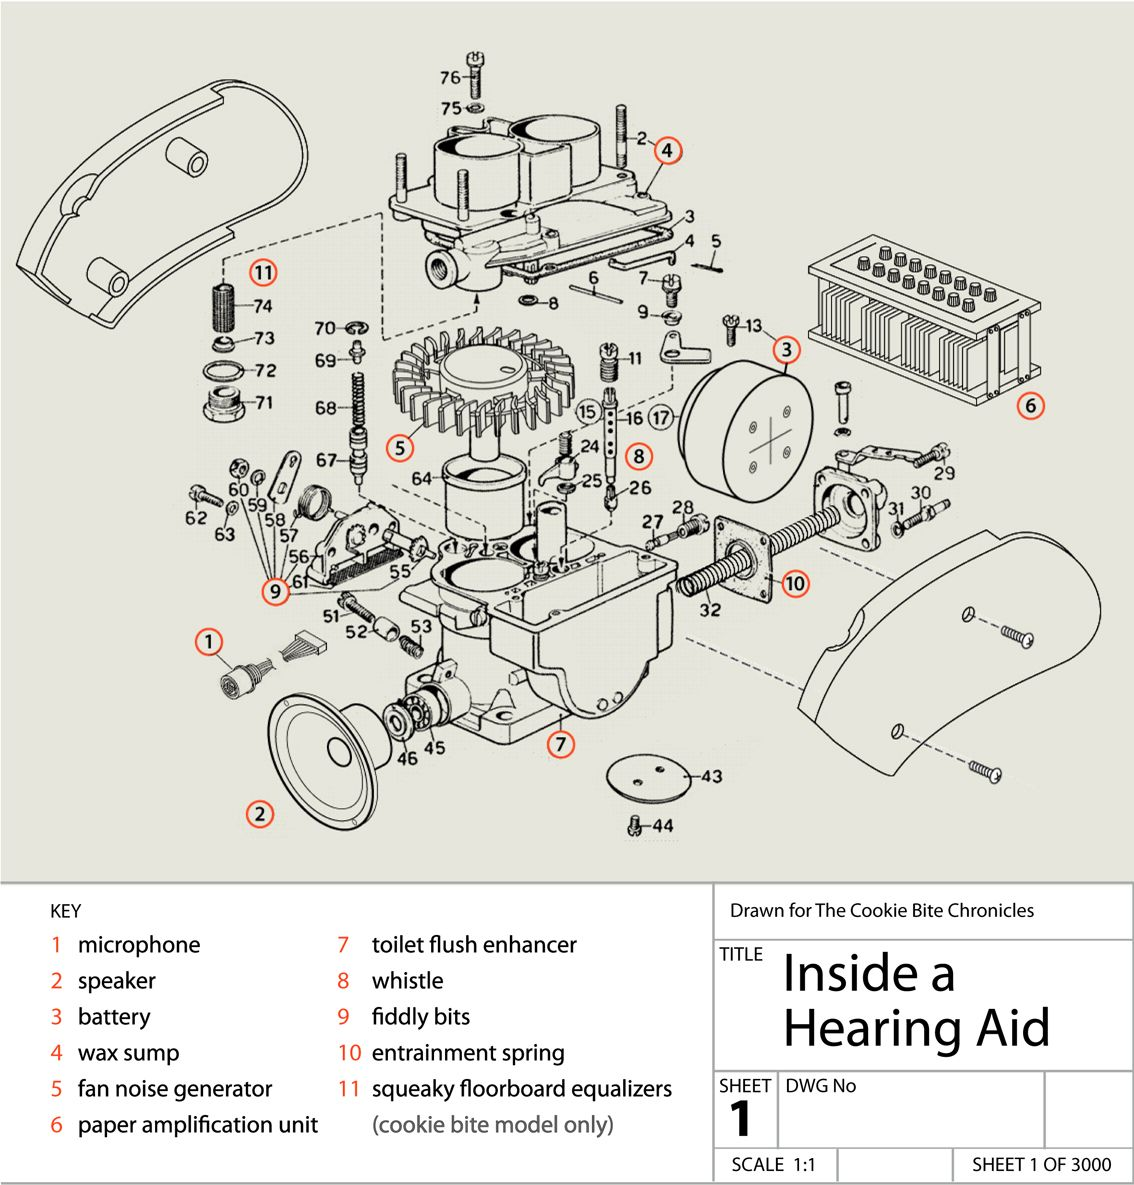 Behind The Ear Diagram Labeled Motte And Bailey Castle Anatomy Of A Hearing Aid Pinterest Aids Sign